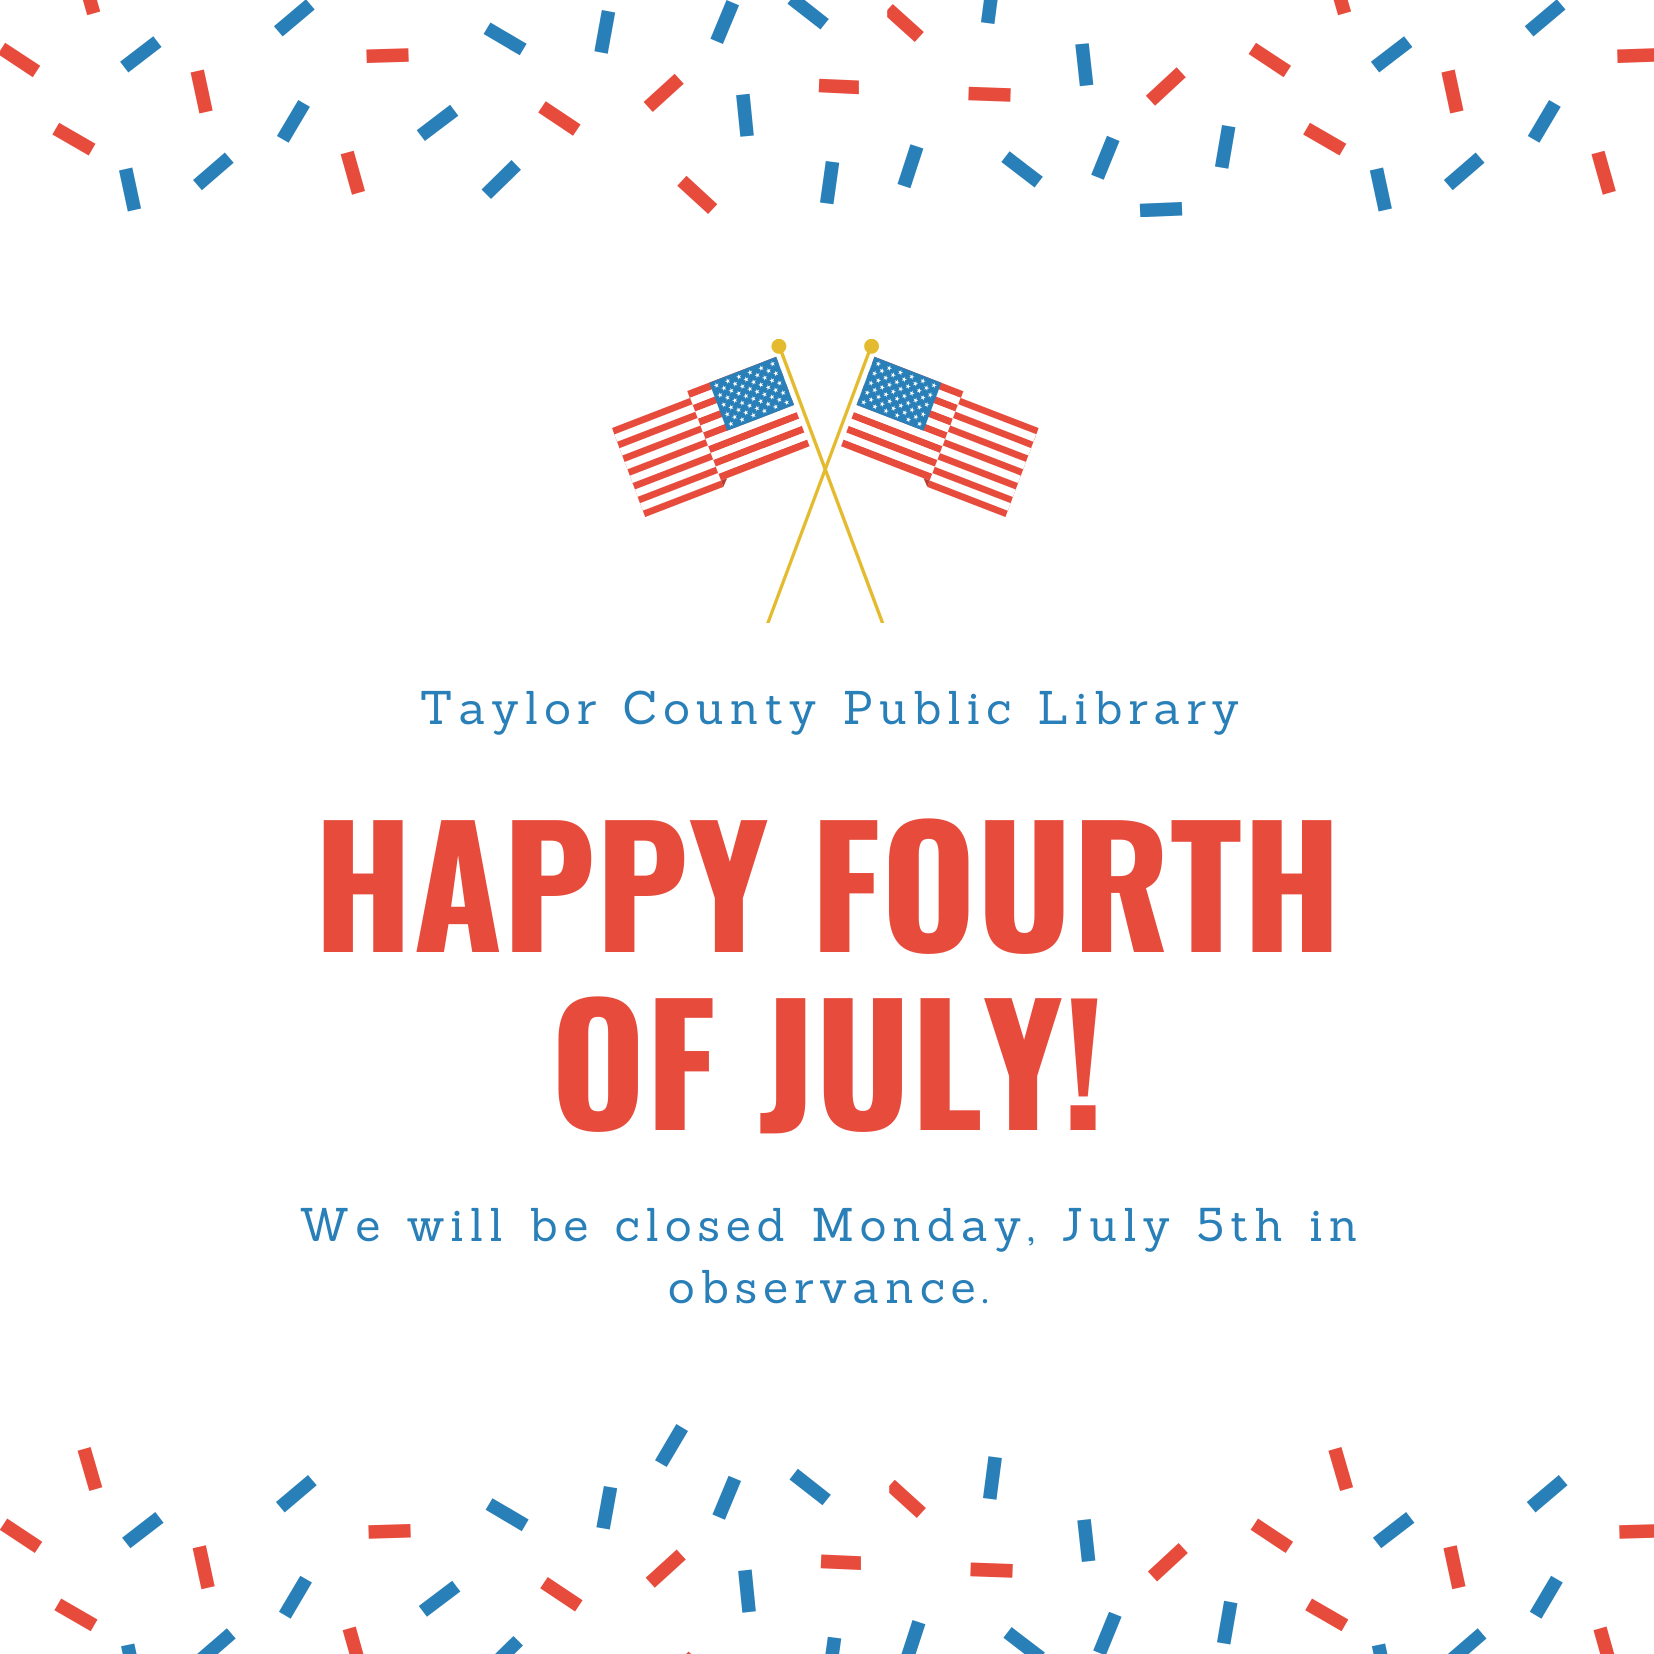 Closed for the Fourth of July